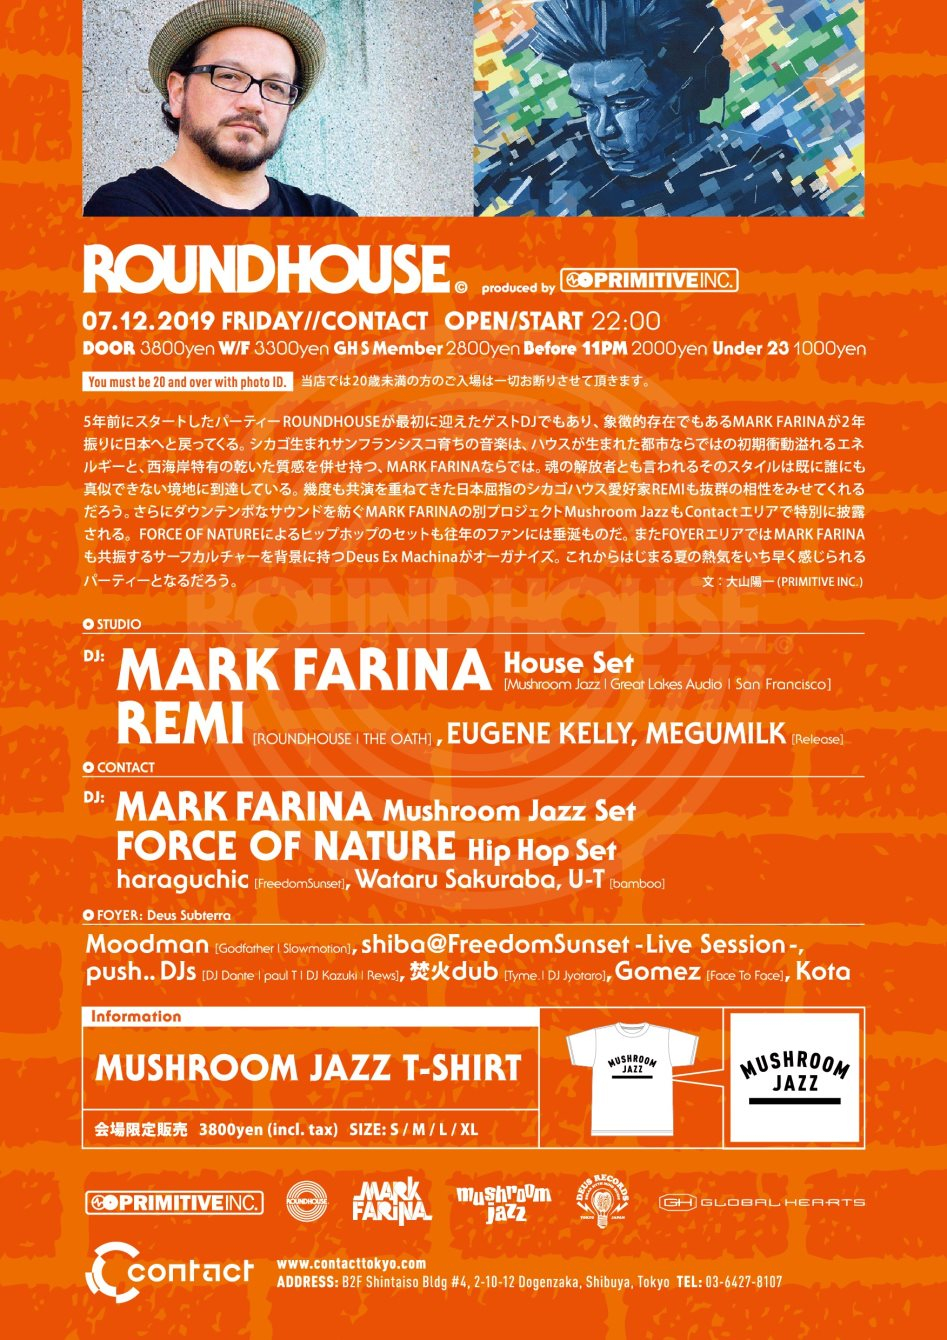 Roundhouse Feat. Mark Farina - Flyer back